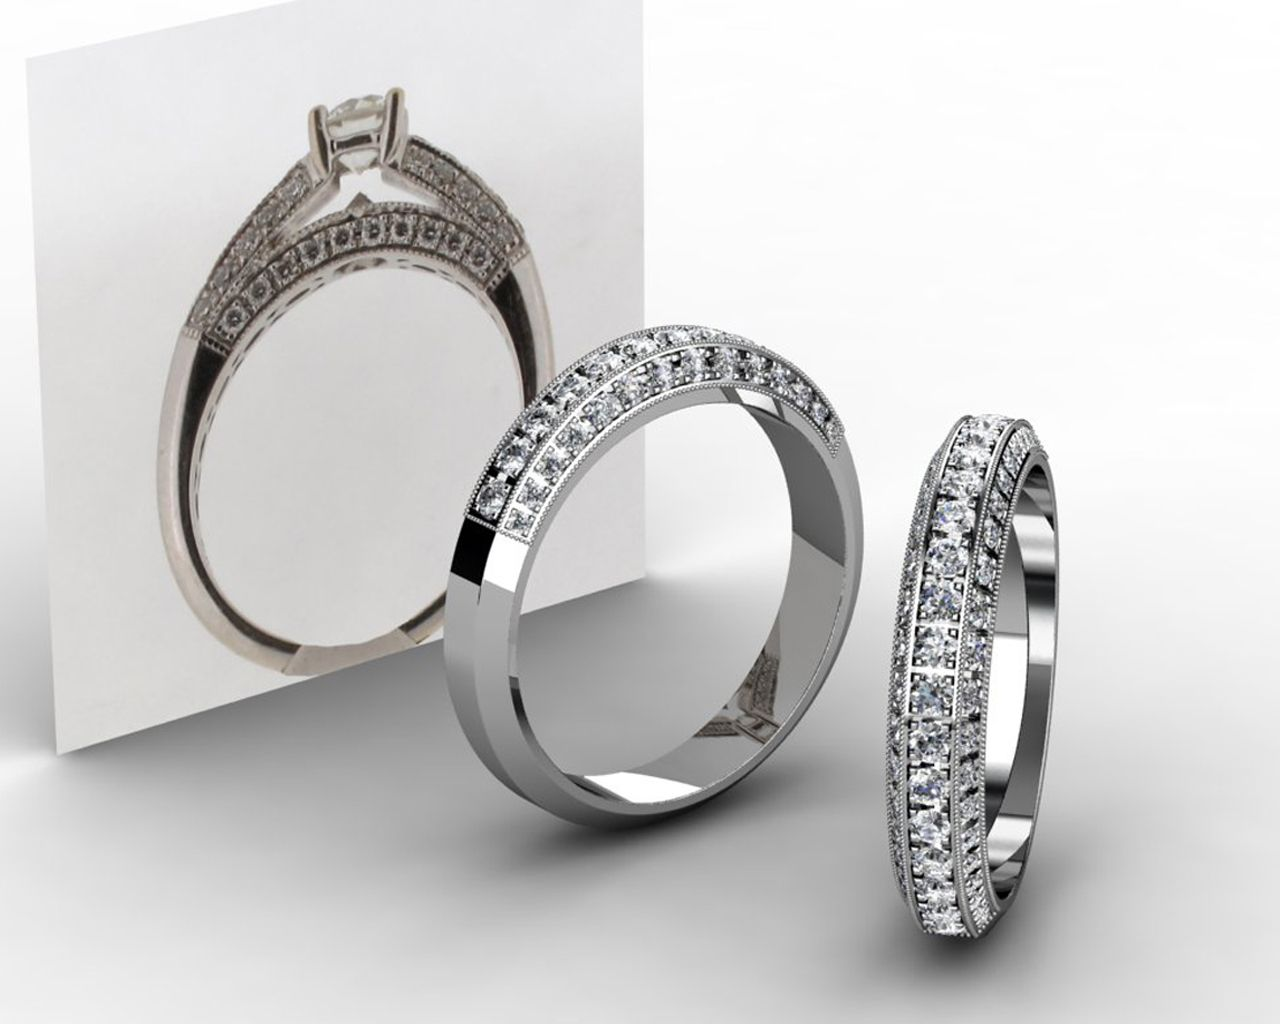 Creating the perfect wedding band couldn't be easier.At Wongs Jewellers we have the perfect team ready to help from designers to goldsmith all available in store.